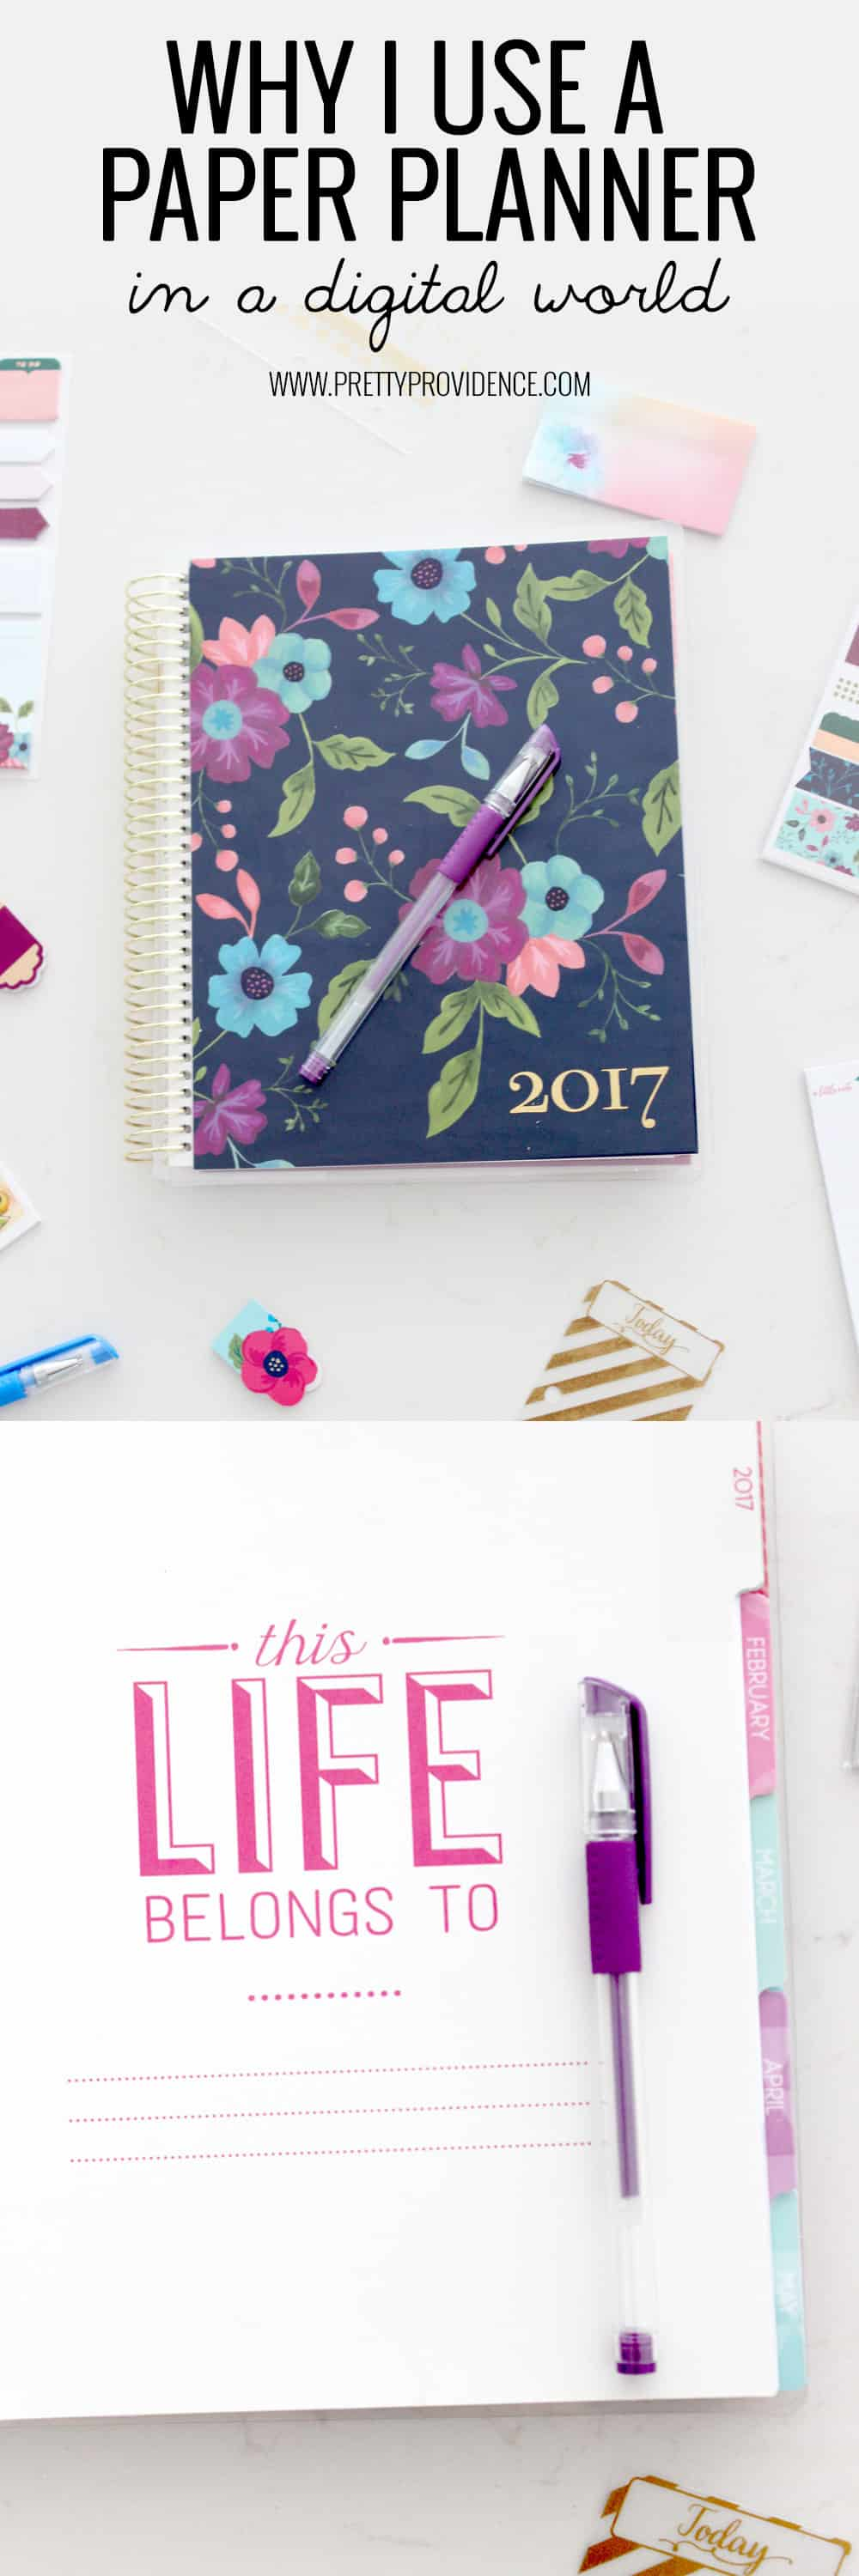 Why I use a paper planner in a digital age! I cannot live without my paper planner! Click through to find out why!